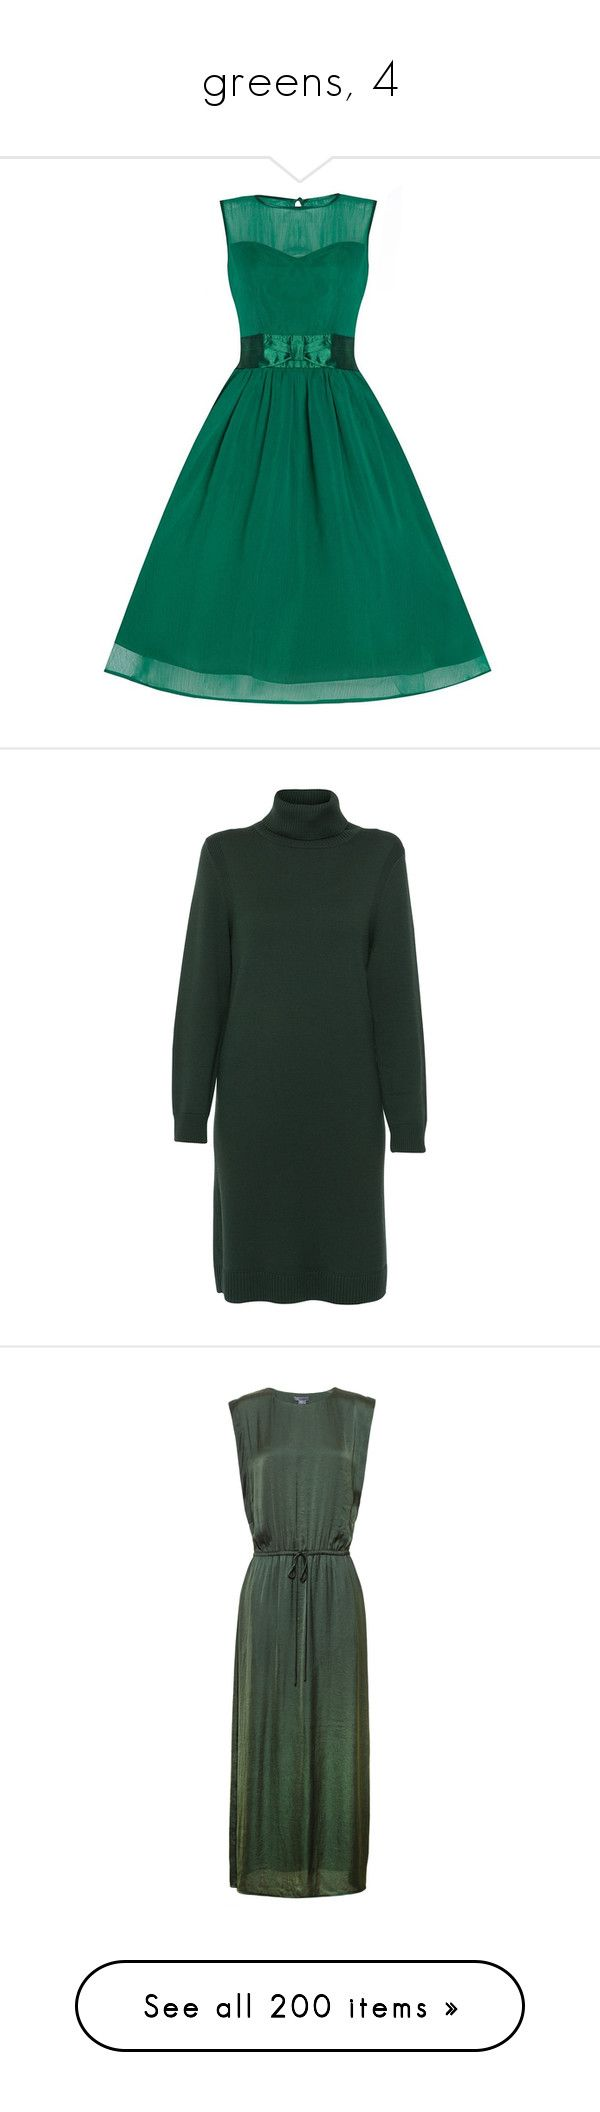 """""""greens, 4"""" by confluence ❤ liked on Polyvore featuring dresses, blue dress, blue formal dresses, green dress, green formal dresses, green prom dresses, green, long sleeve turtleneck, olive green turtleneck and green sweater dress"""